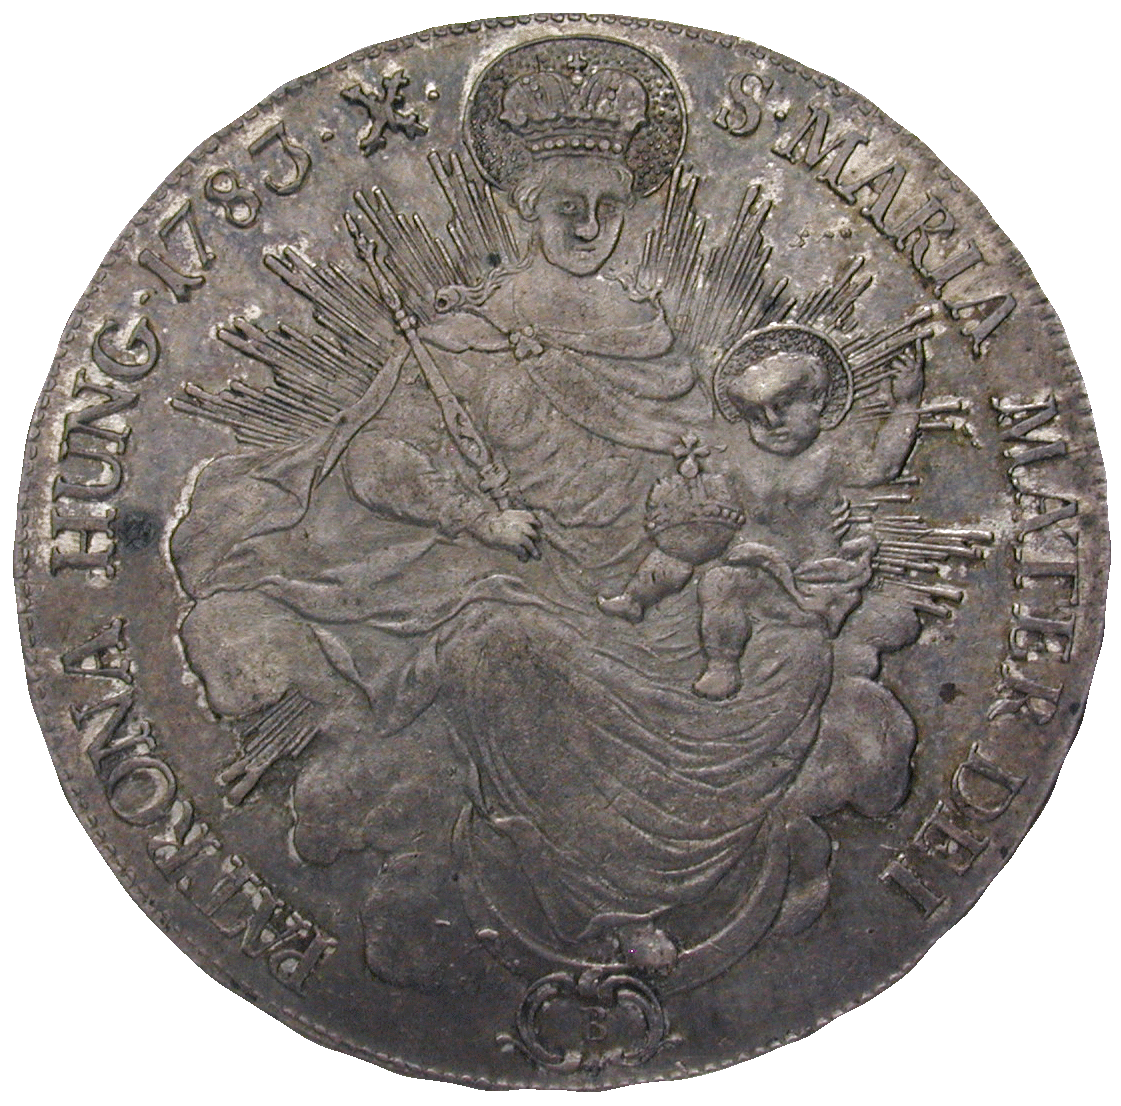 Holy Roman Empire, Kingdom of Hungary, Joseph II, Taler 1783 (reverse)